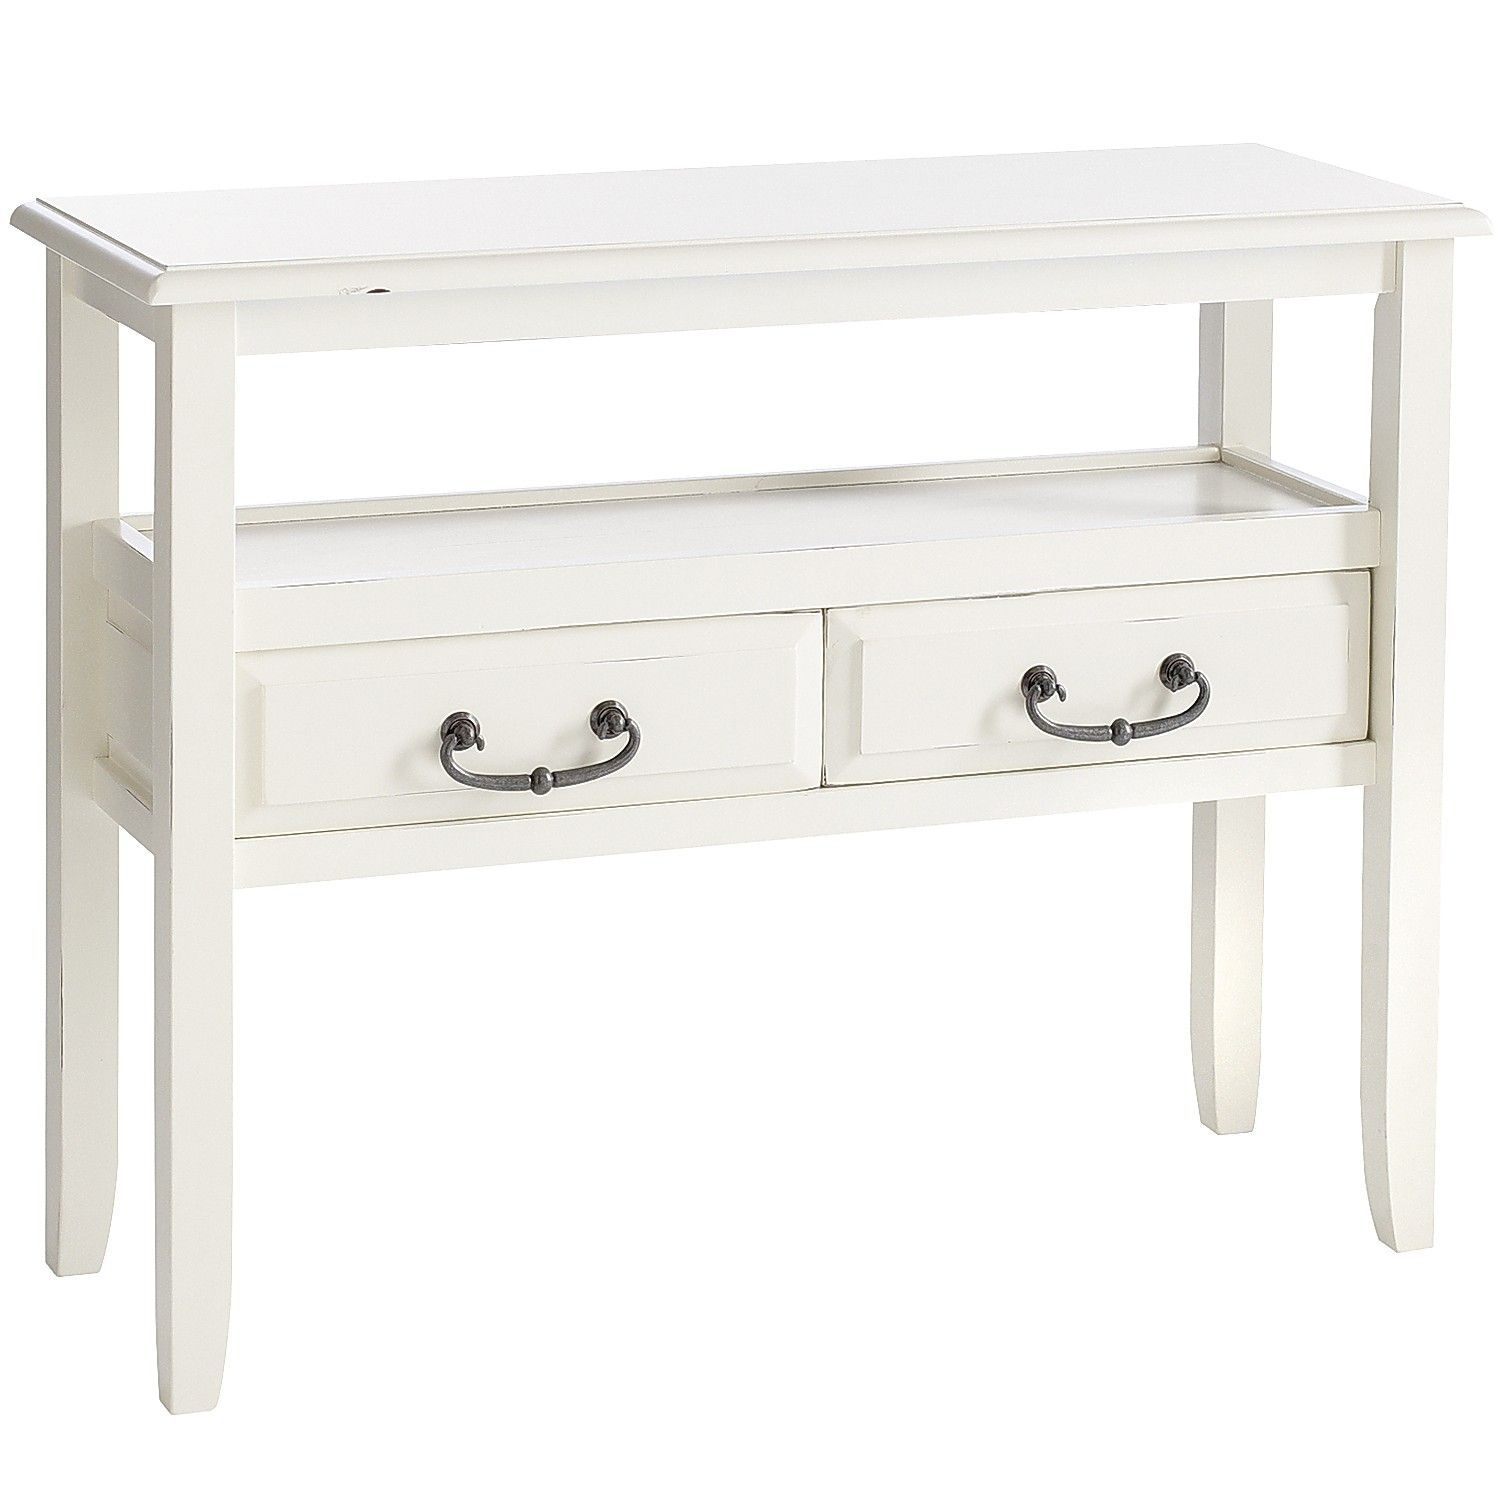 Anywhere Antique White Console Table With Pull Handles | Home Sweet intended for Switch Console Tables (Image 2 of 30)